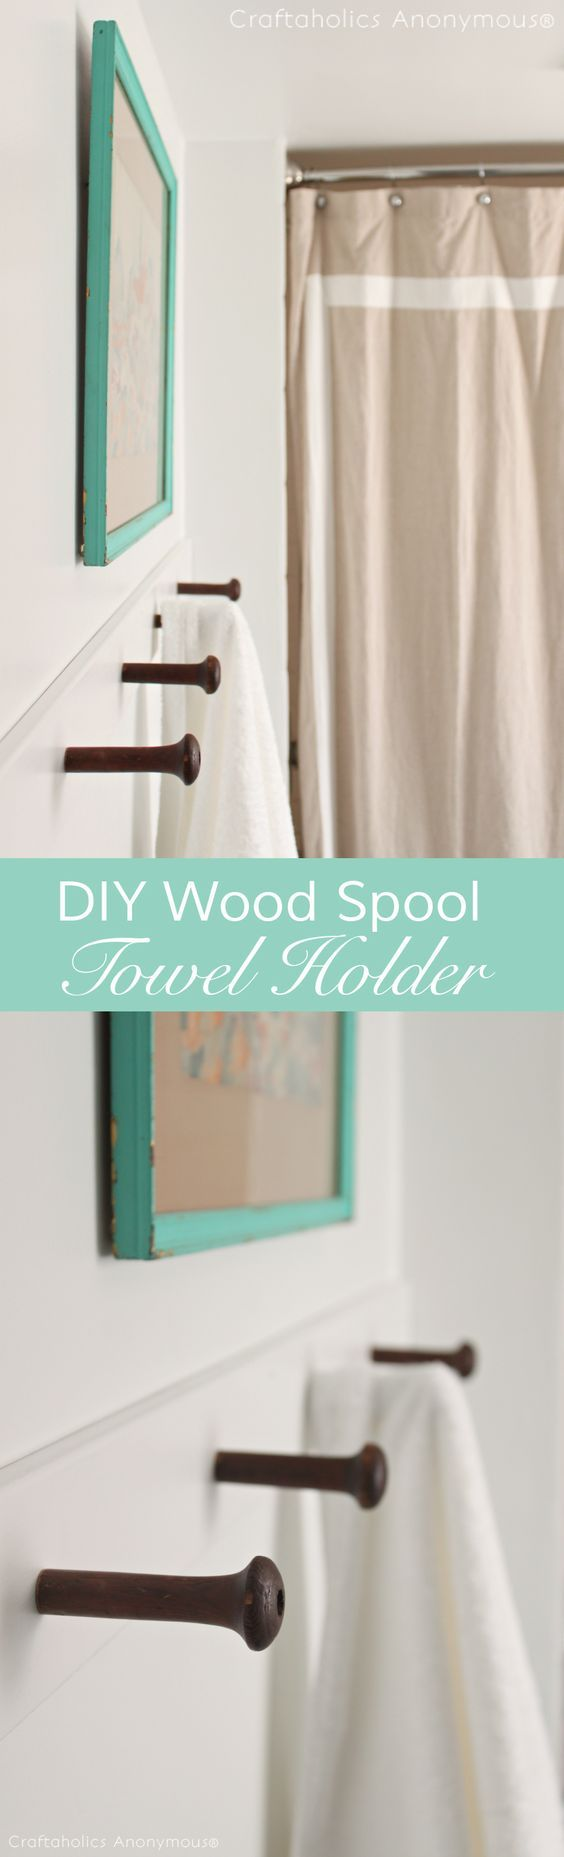 A towel holder idea that is so vintage! Power tool tutorial included of course.